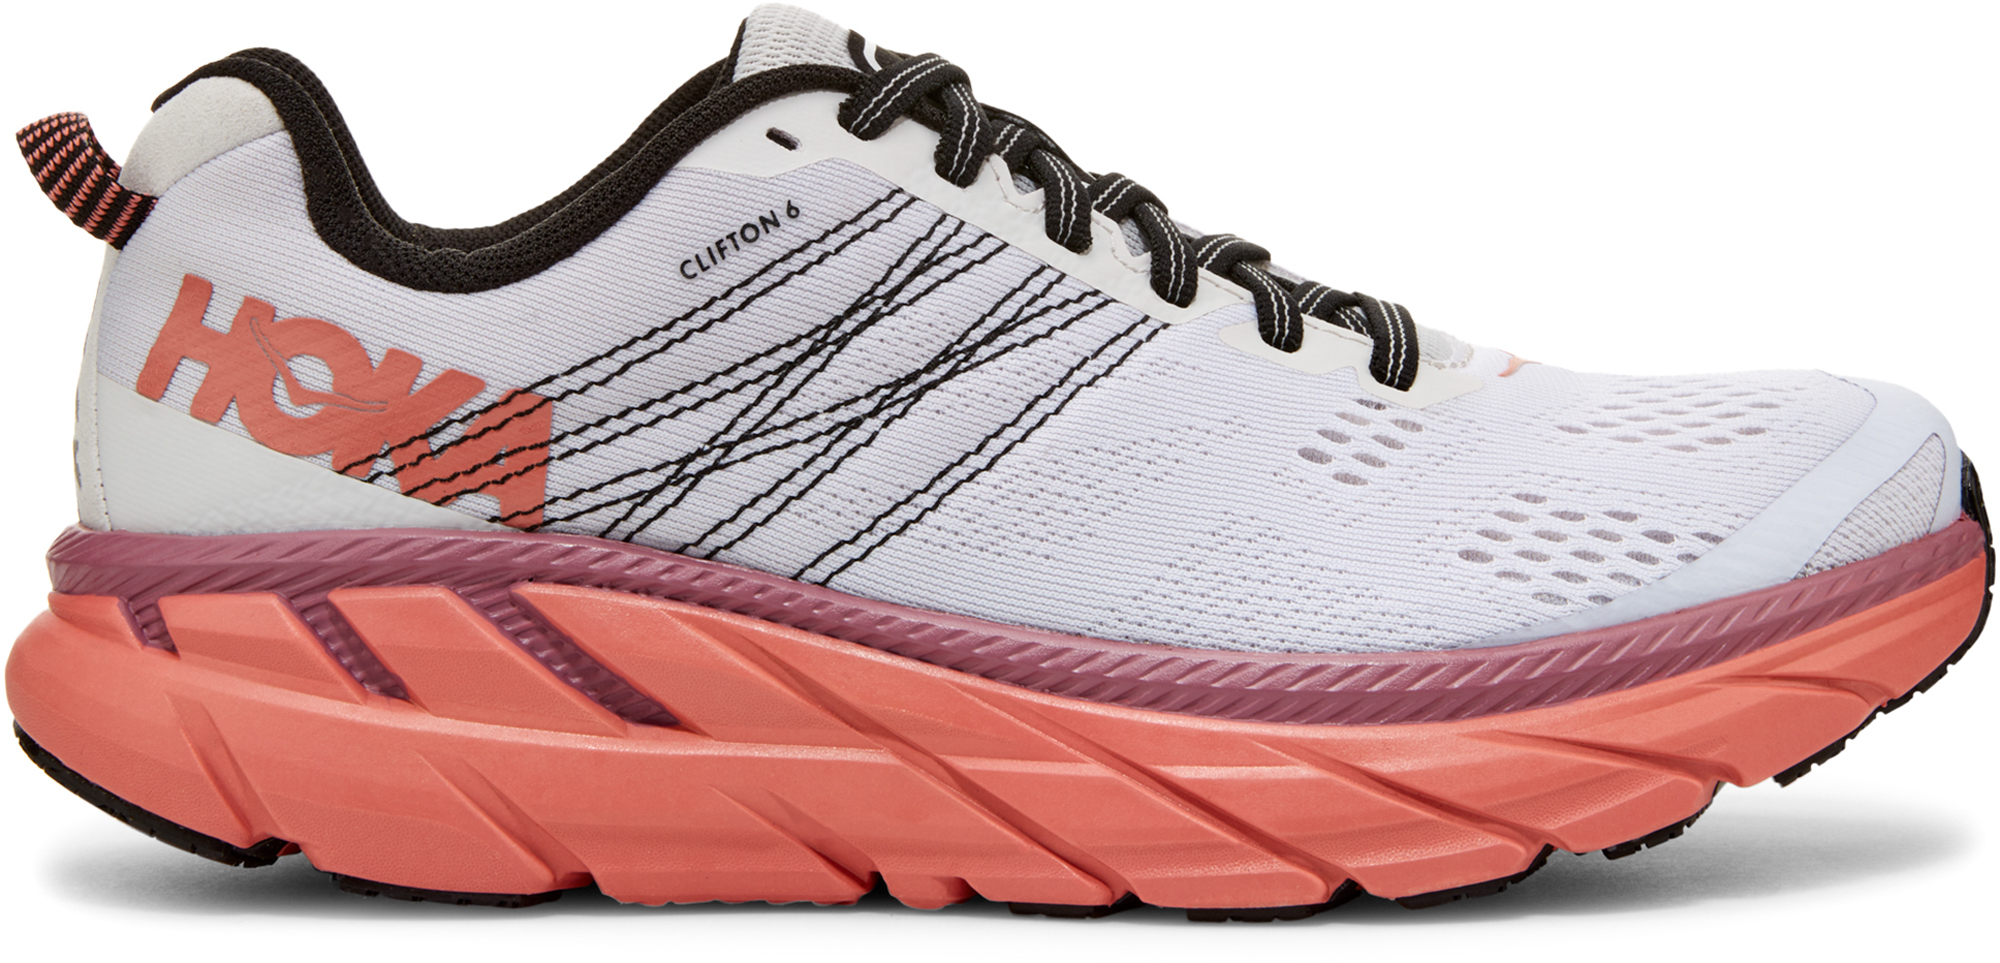 HOKA ONE ONE Кроссовки женские HOKA ONE ONE Clifton 6, размер 37 hoka one one women s w conquest running shoe